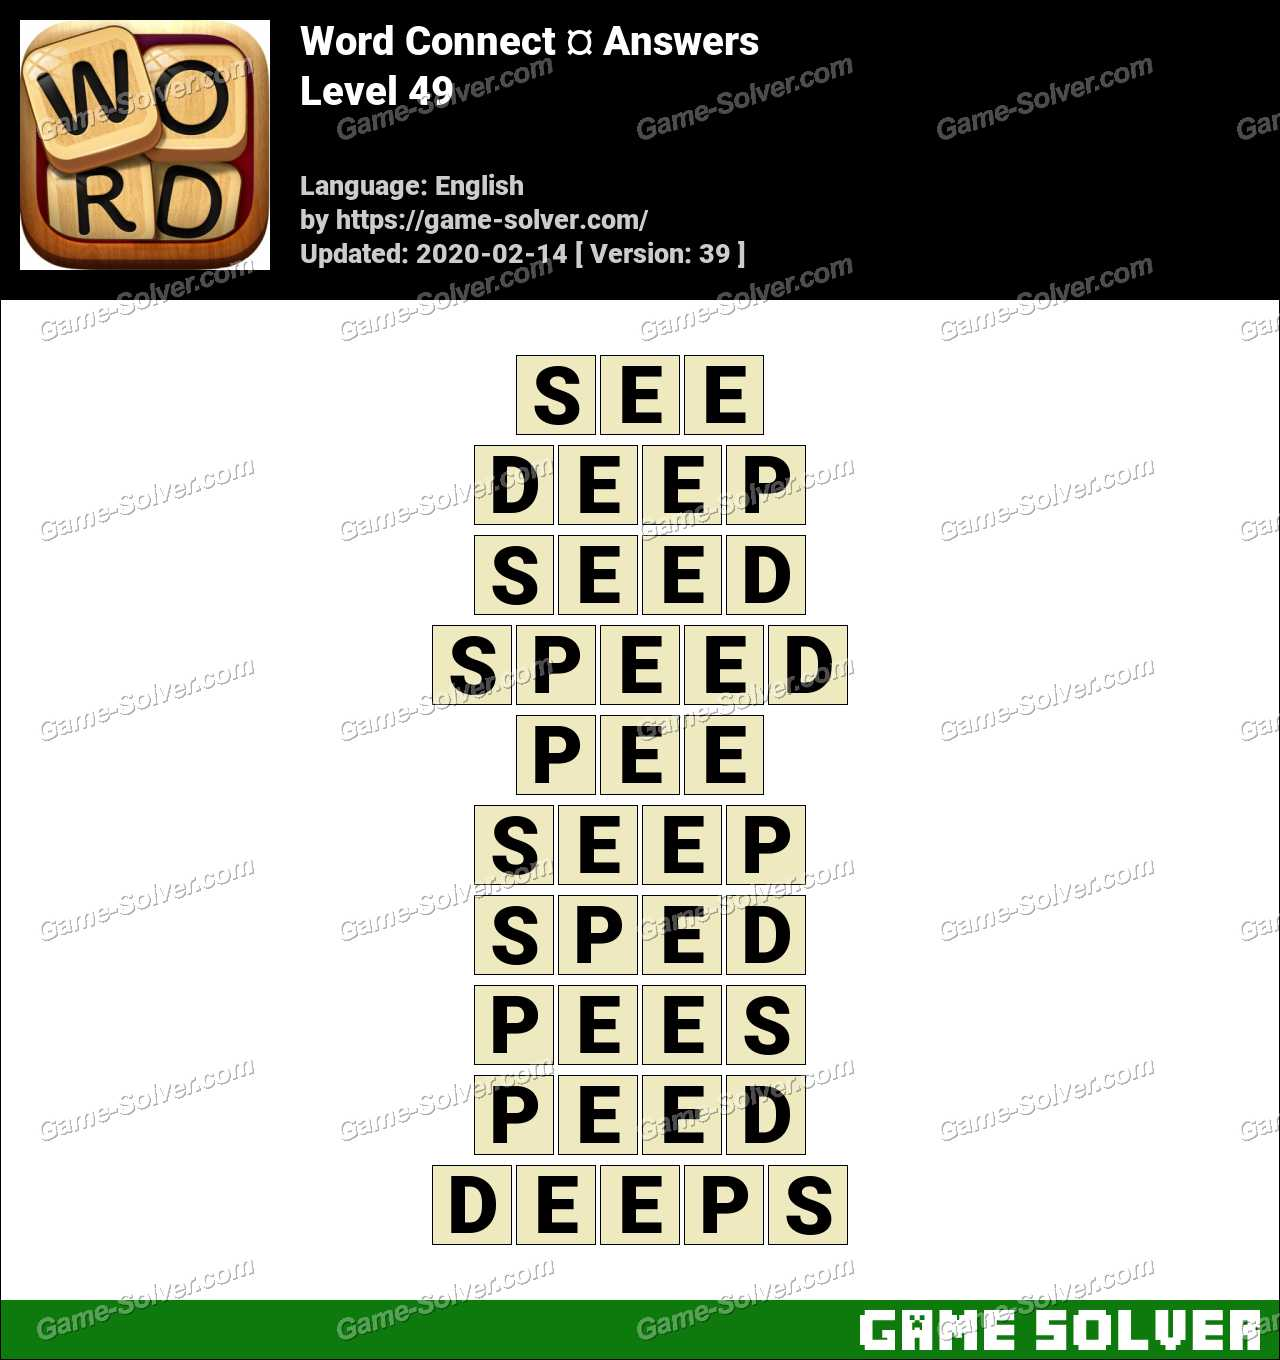 Word Connect Level 49 Answers